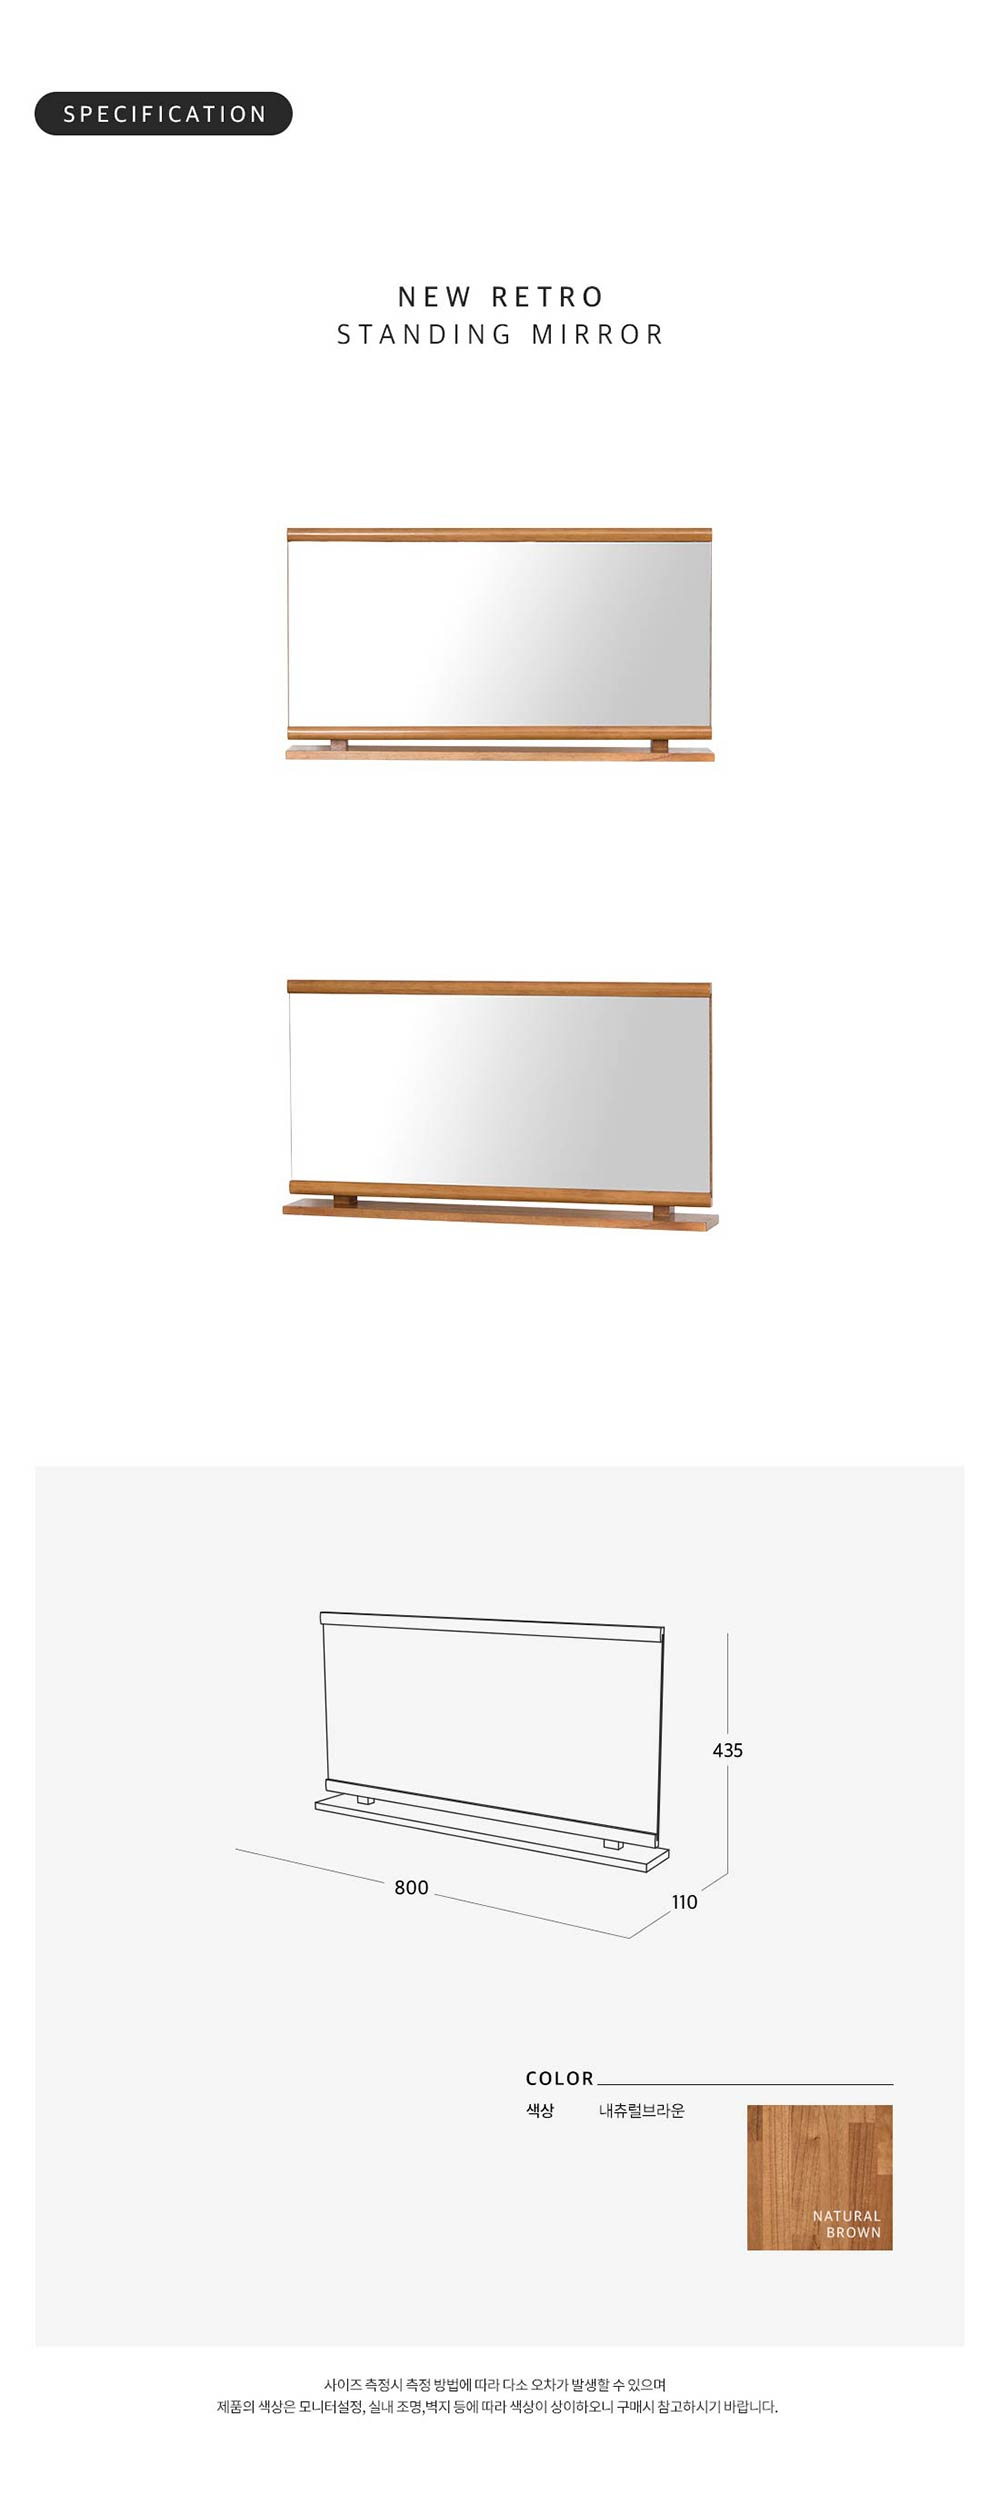 New_Retro_Standing_Mirror_Specification_1_Singapore_Online_Furniture_by_born_in_colour